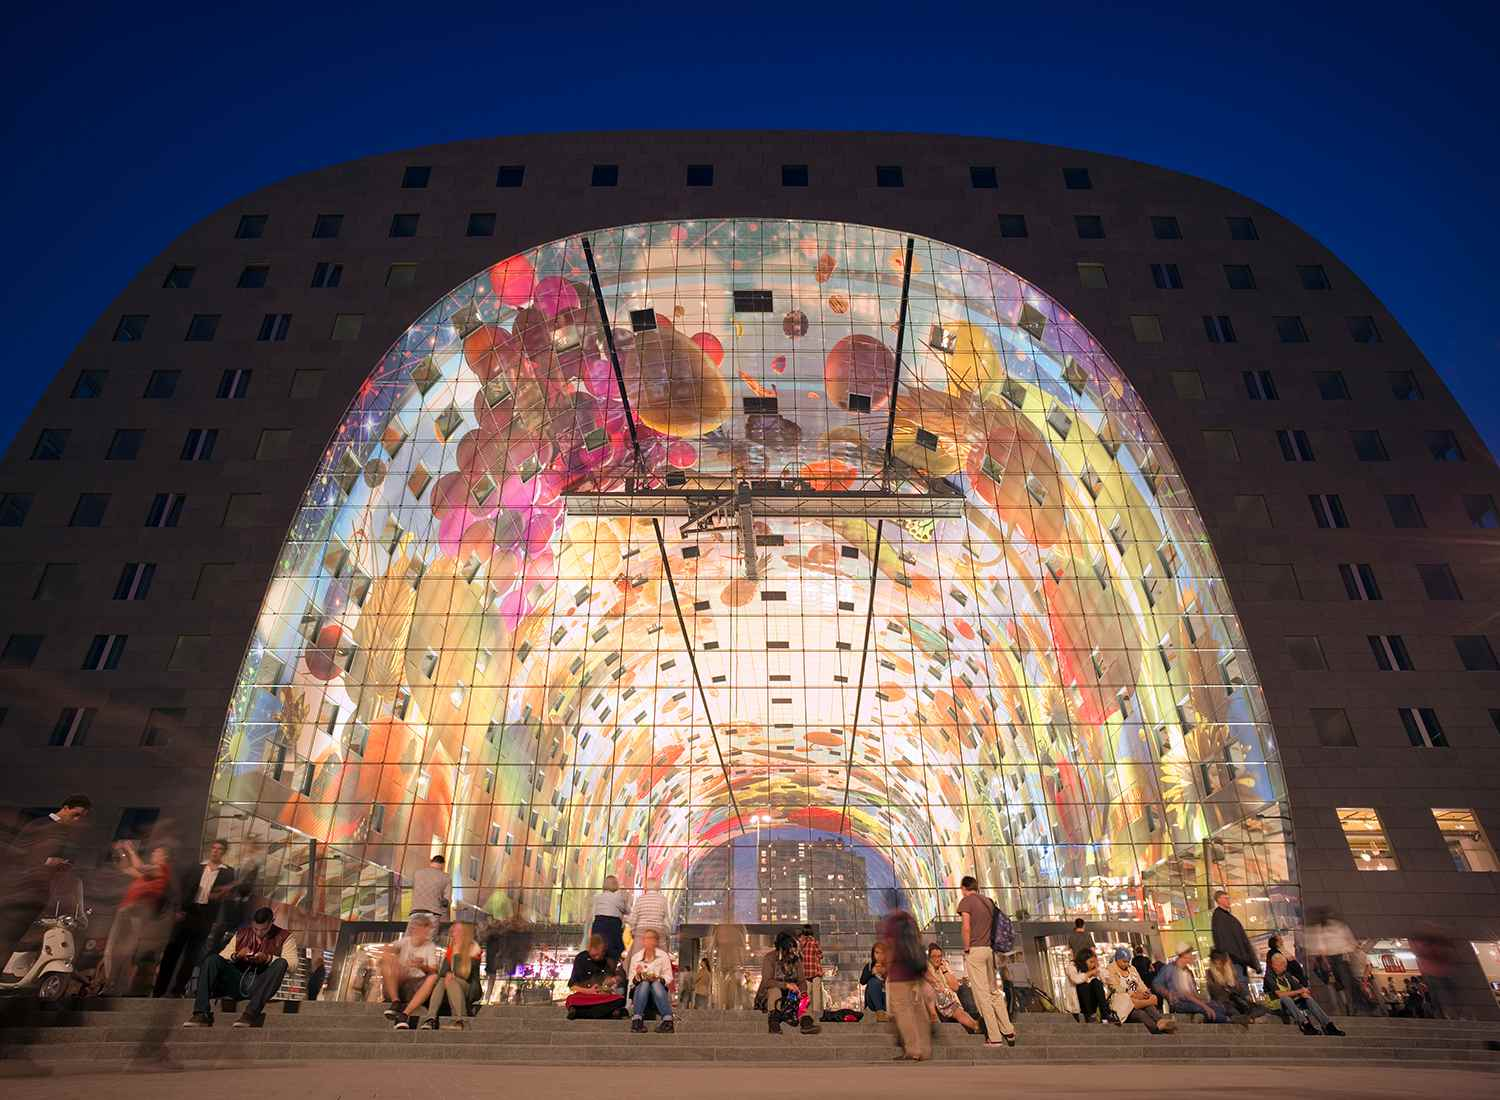 People in front of the Markthal, Rotterdam at dusk.